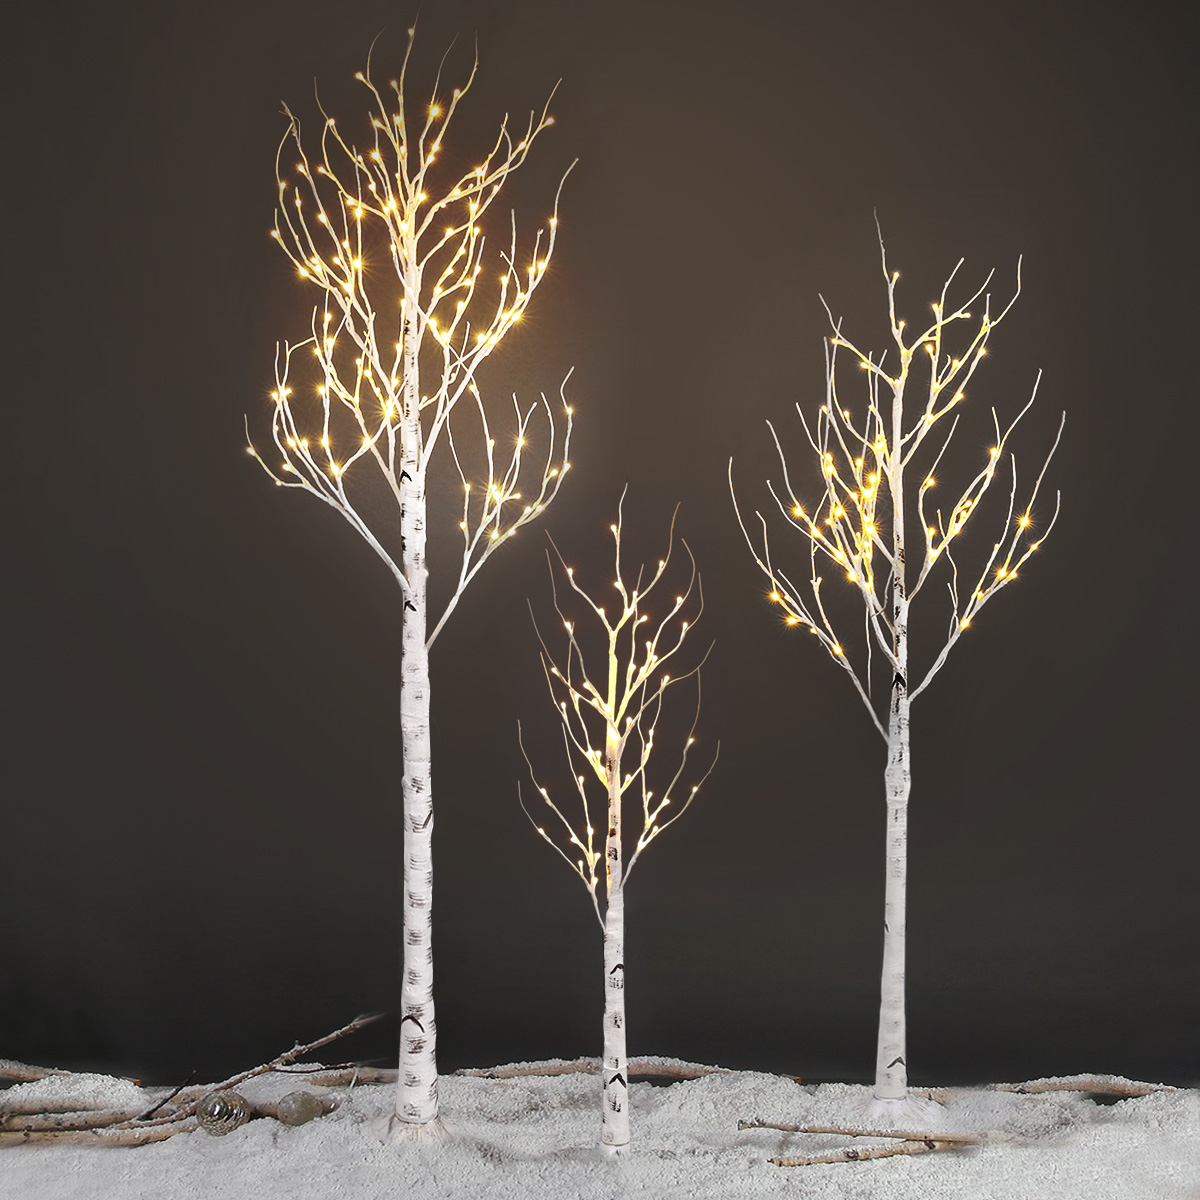 EXCELVAN 15M 5FT 72LED Silver Birch Twig Tree Light Decorative Flexible Creative Warm White Branches Perfect For Home Festival Party Wedding